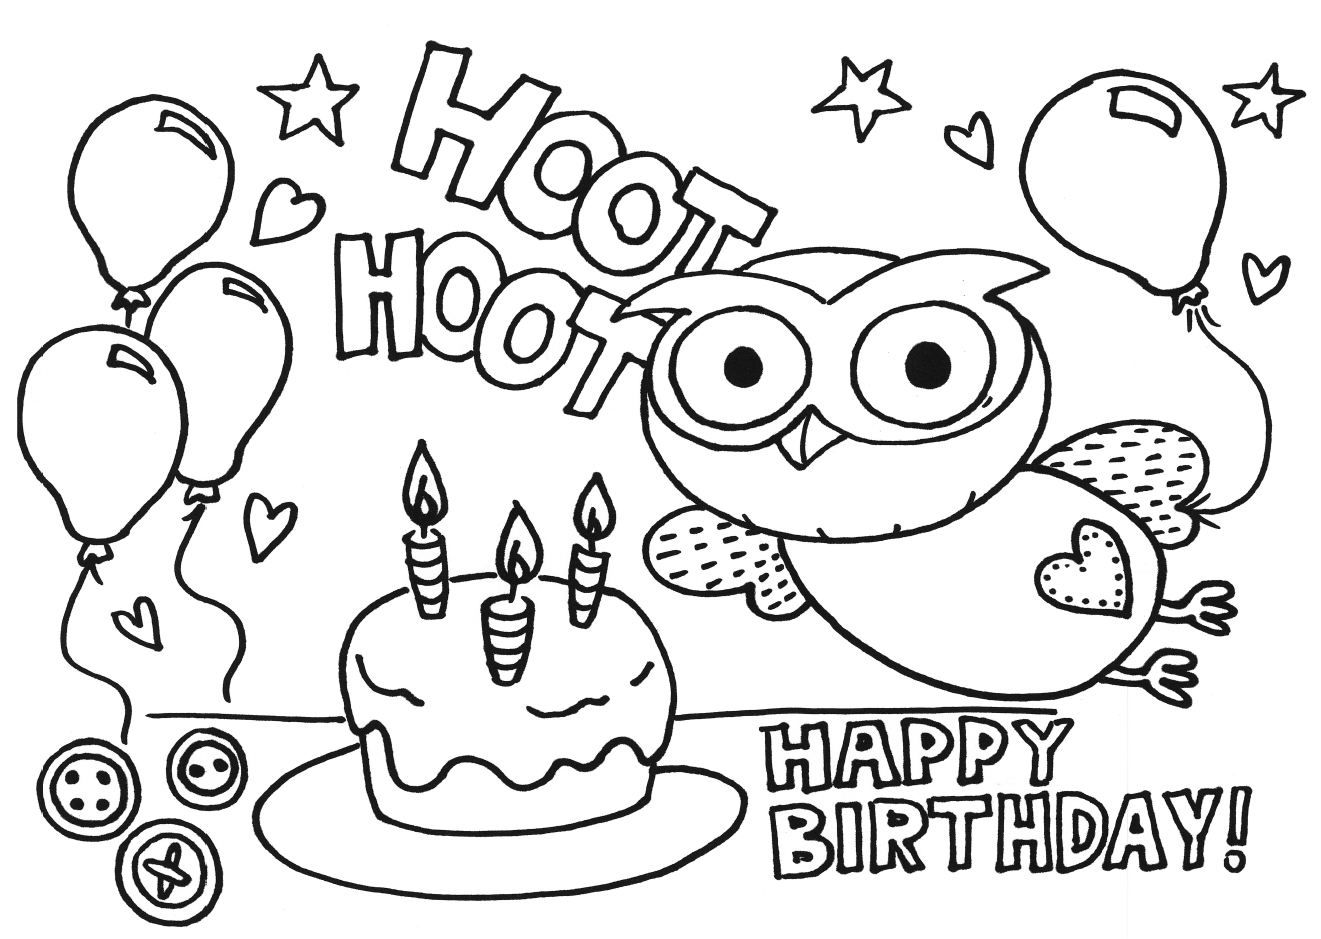 Milk Eyes Giggle And Hoot Free Download Colouring Pages